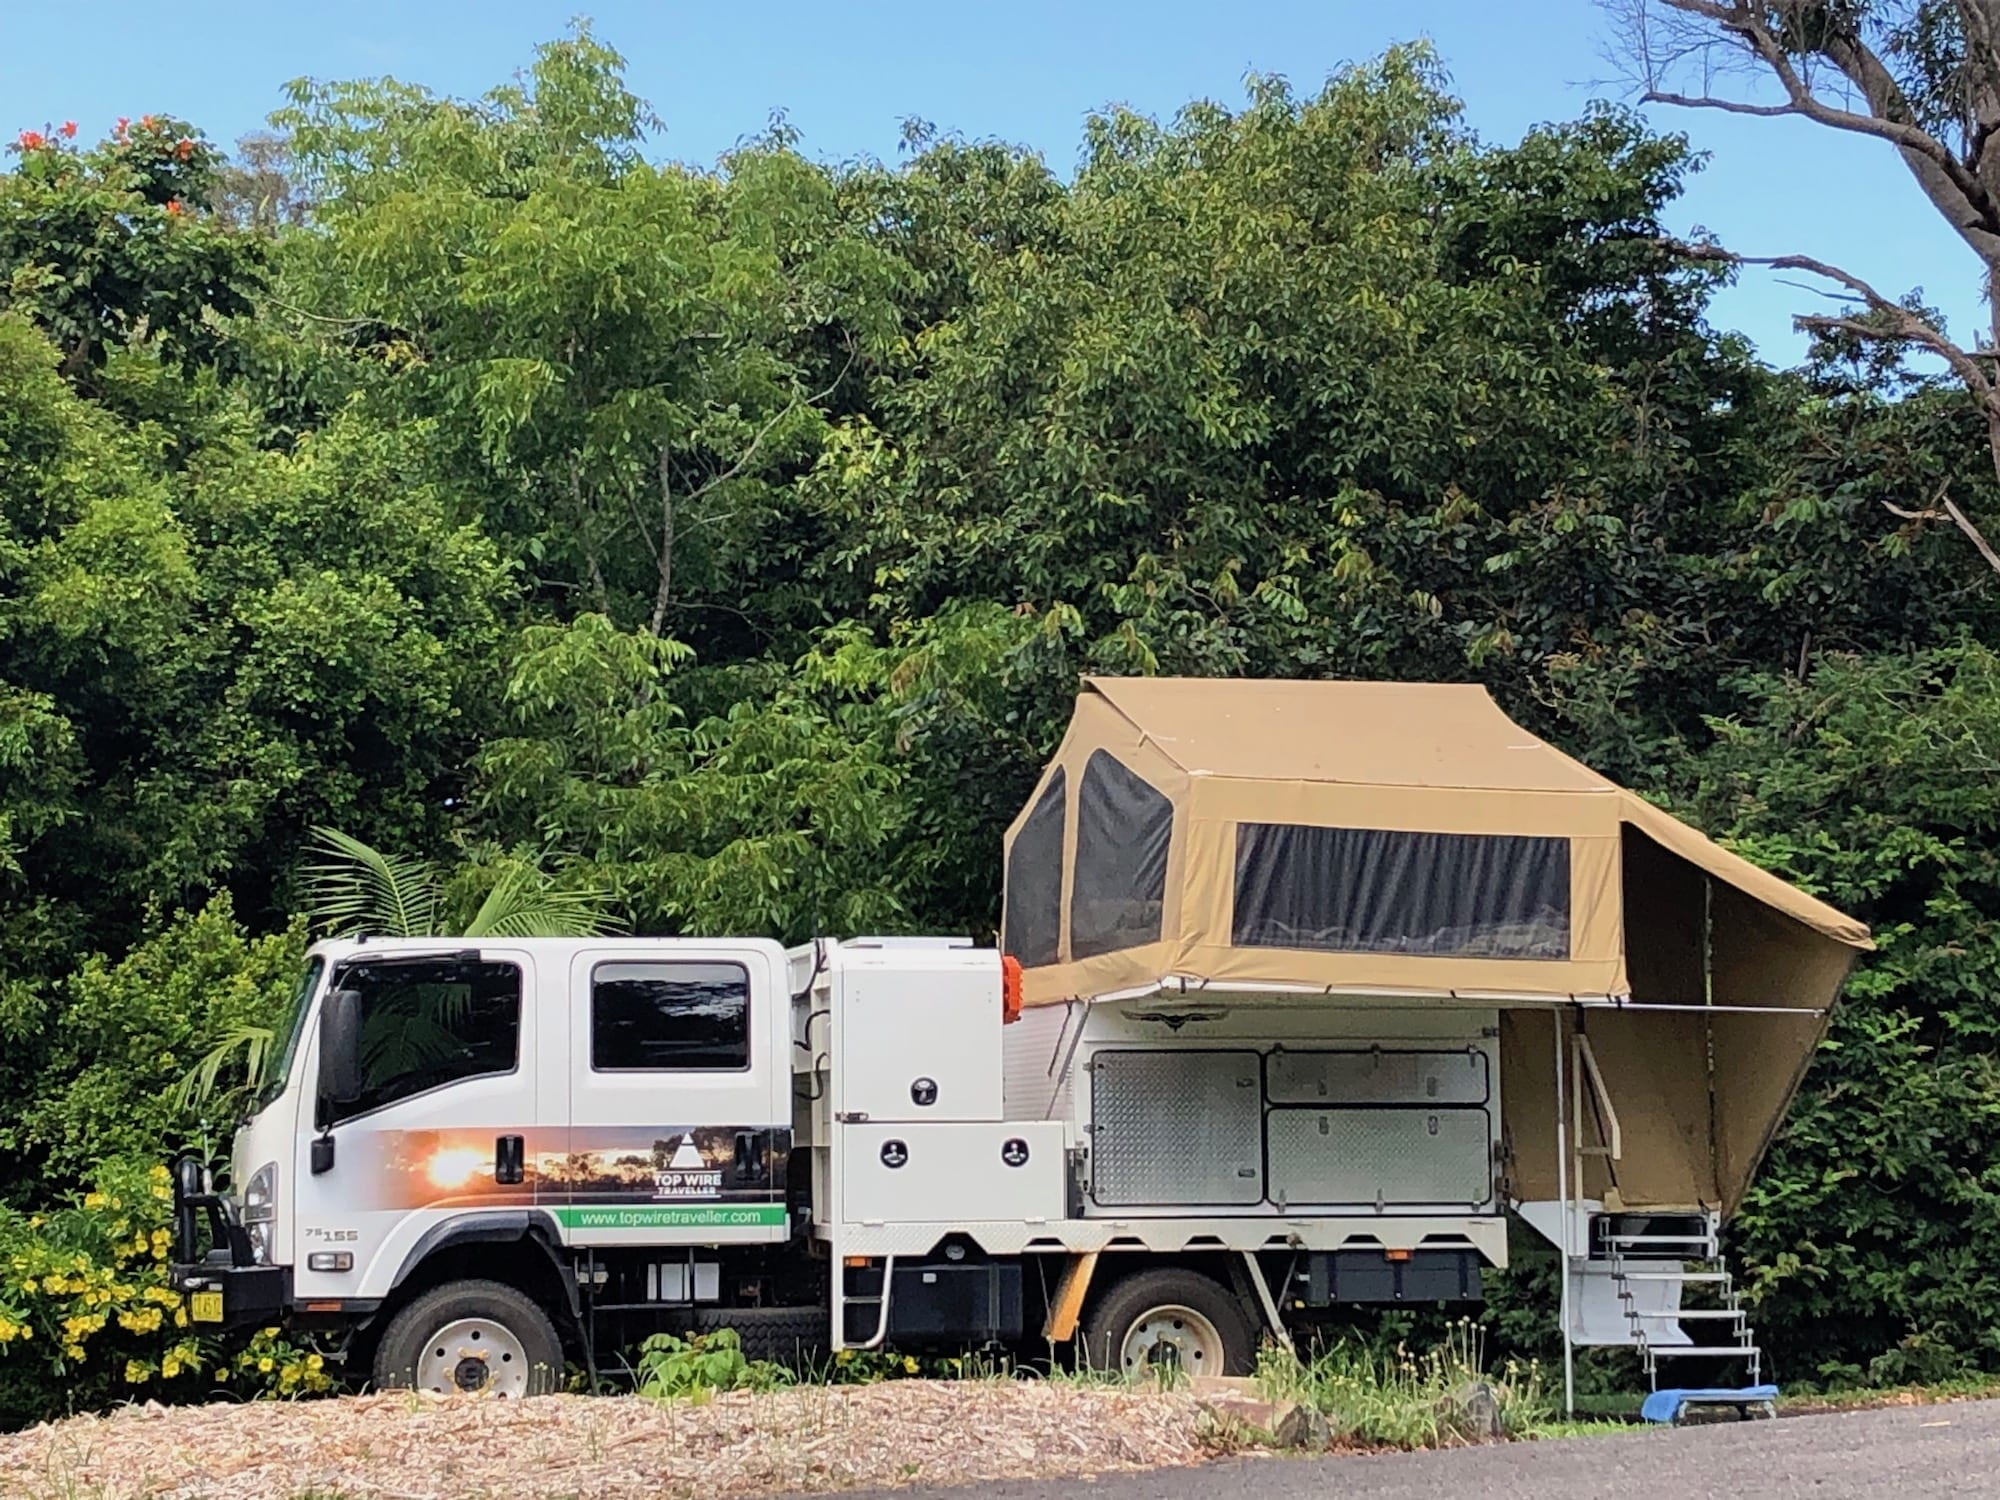 Our Wedgetail Camper video gives you a look inside and around our slide-on camper.